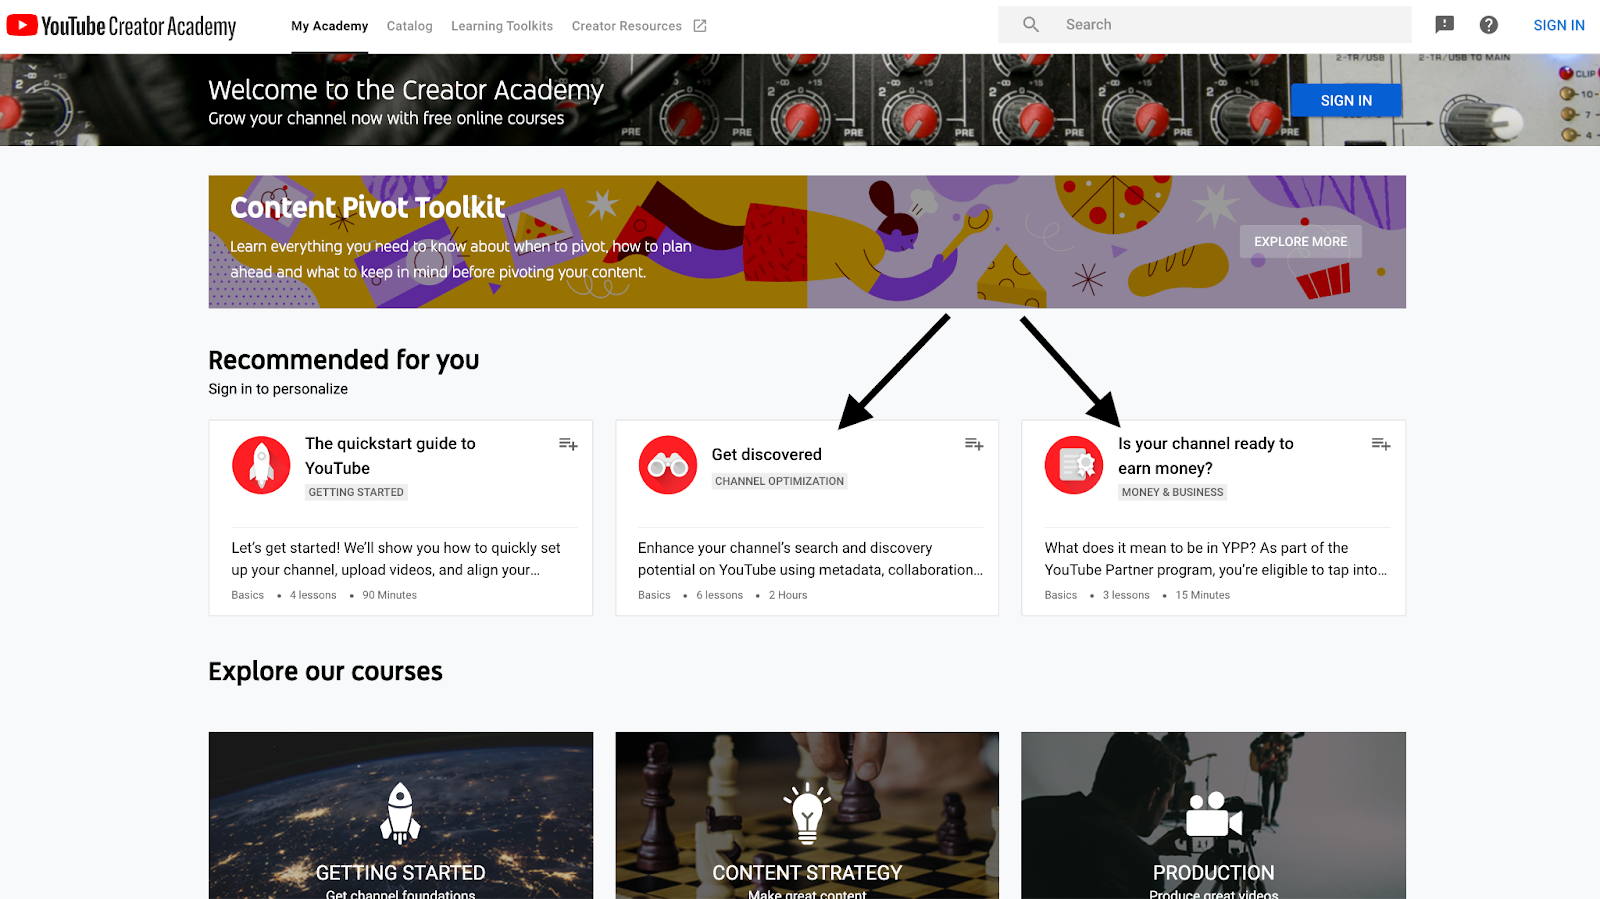 Youtube's creator academy focuses on discovery and monetization